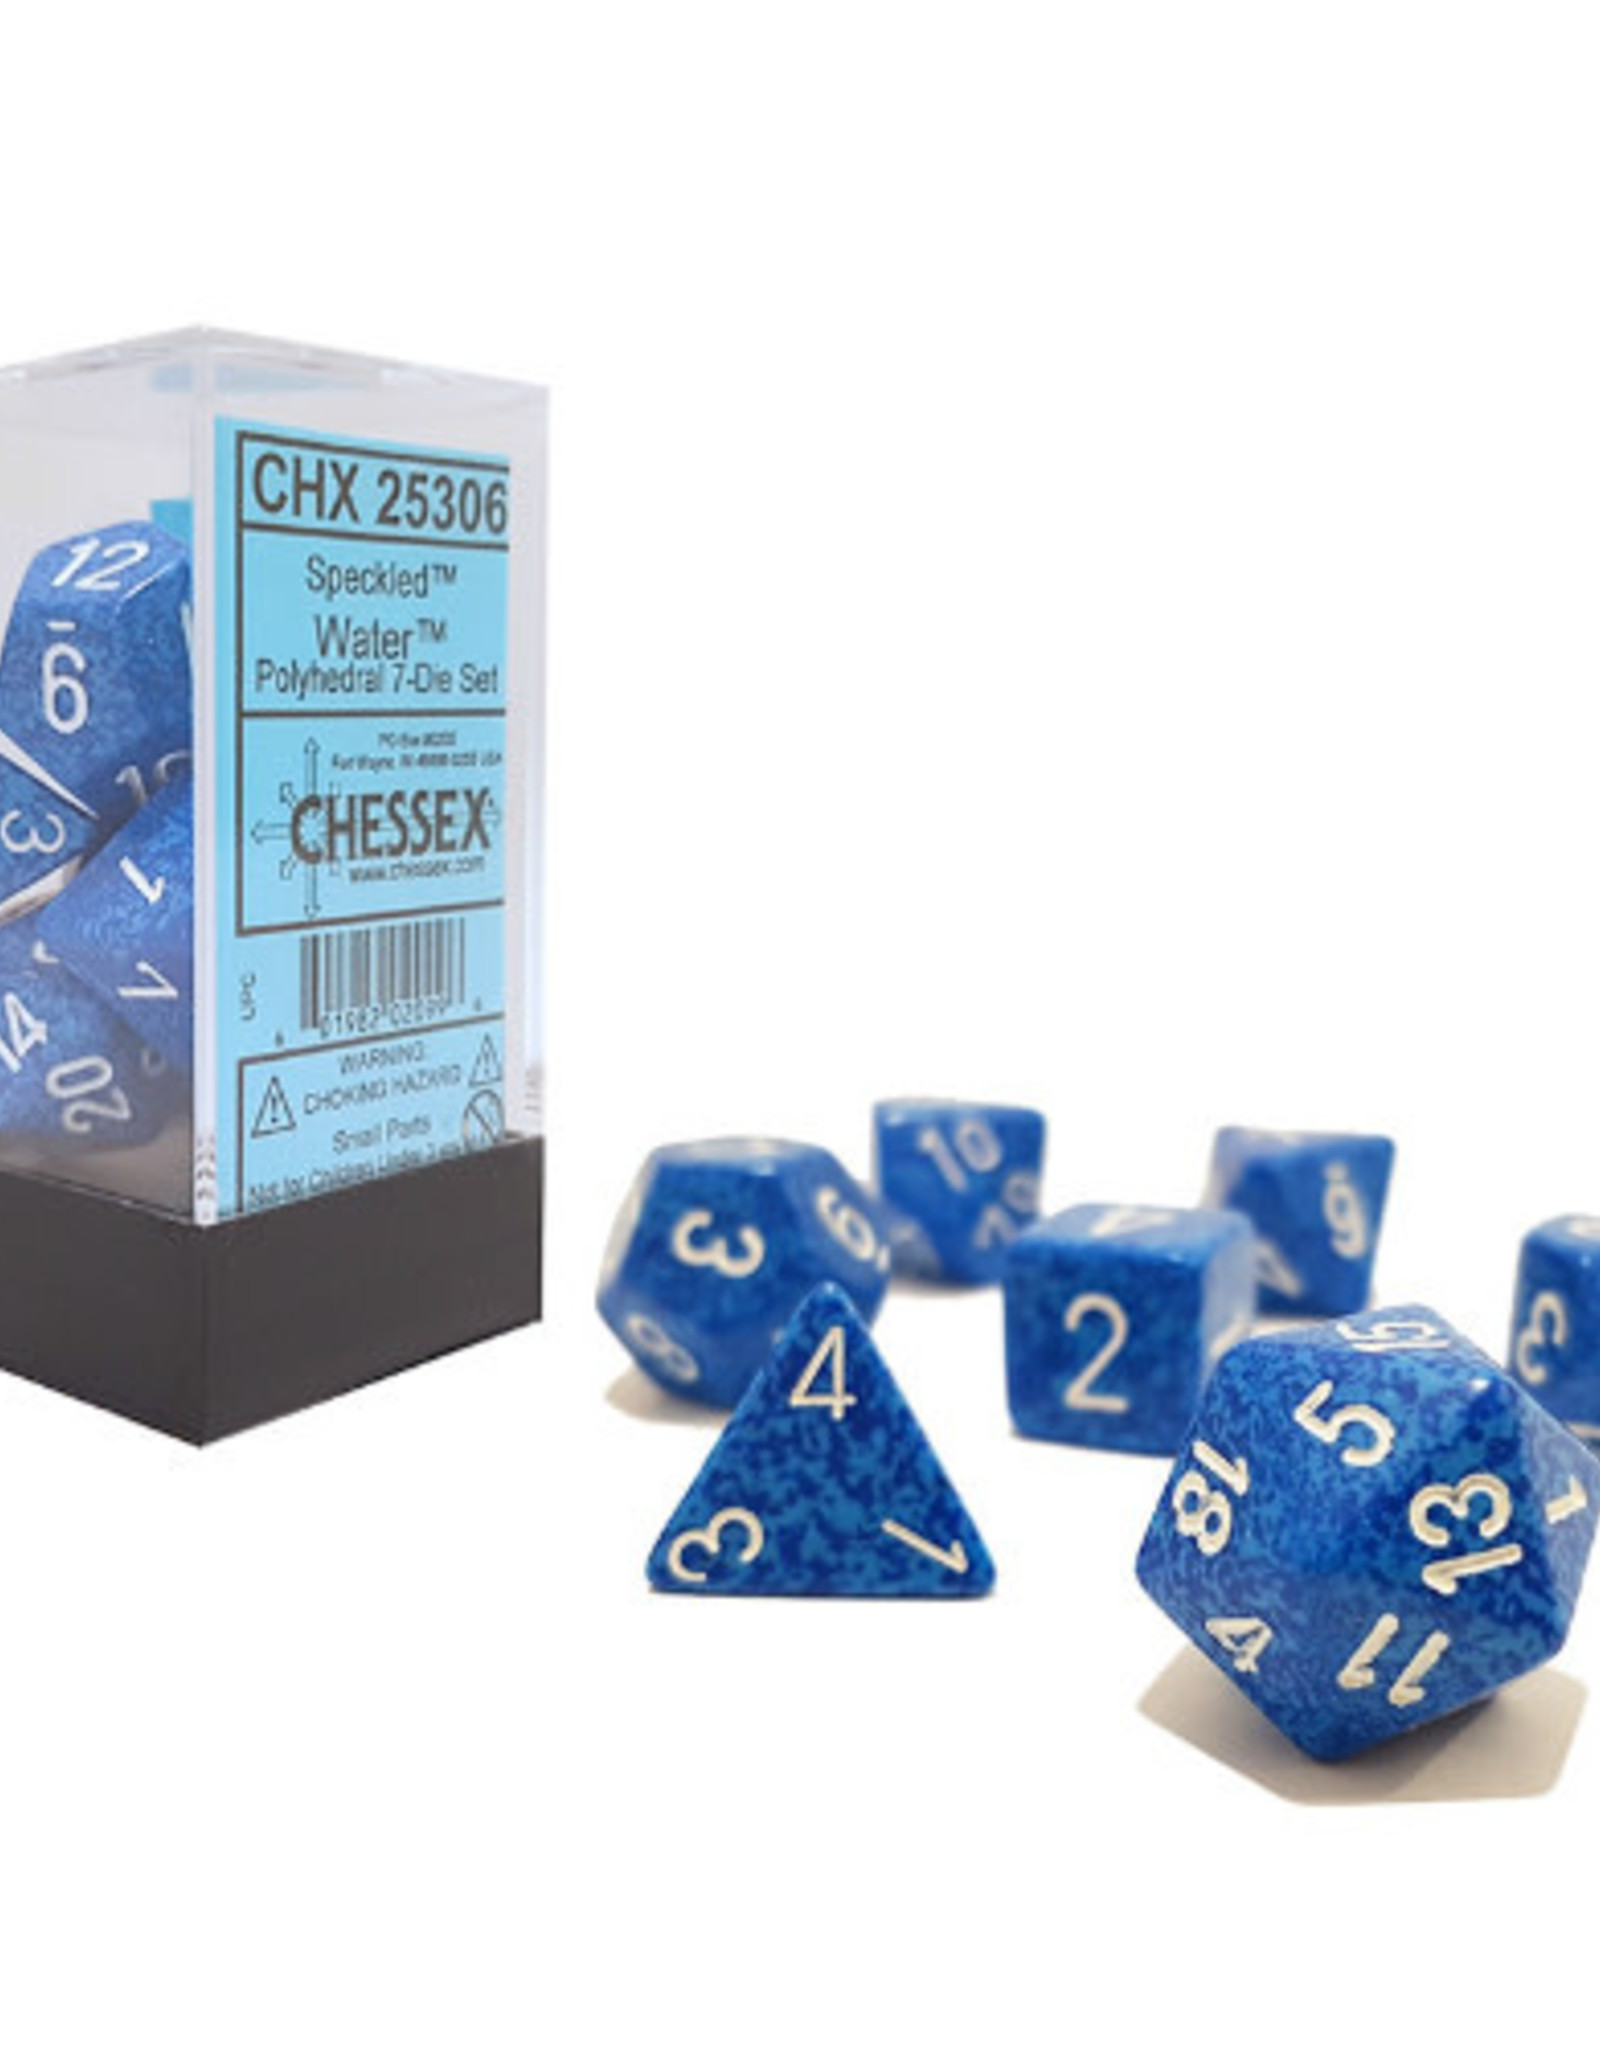 Chessex Dice Block 7ct. - Speckled Water